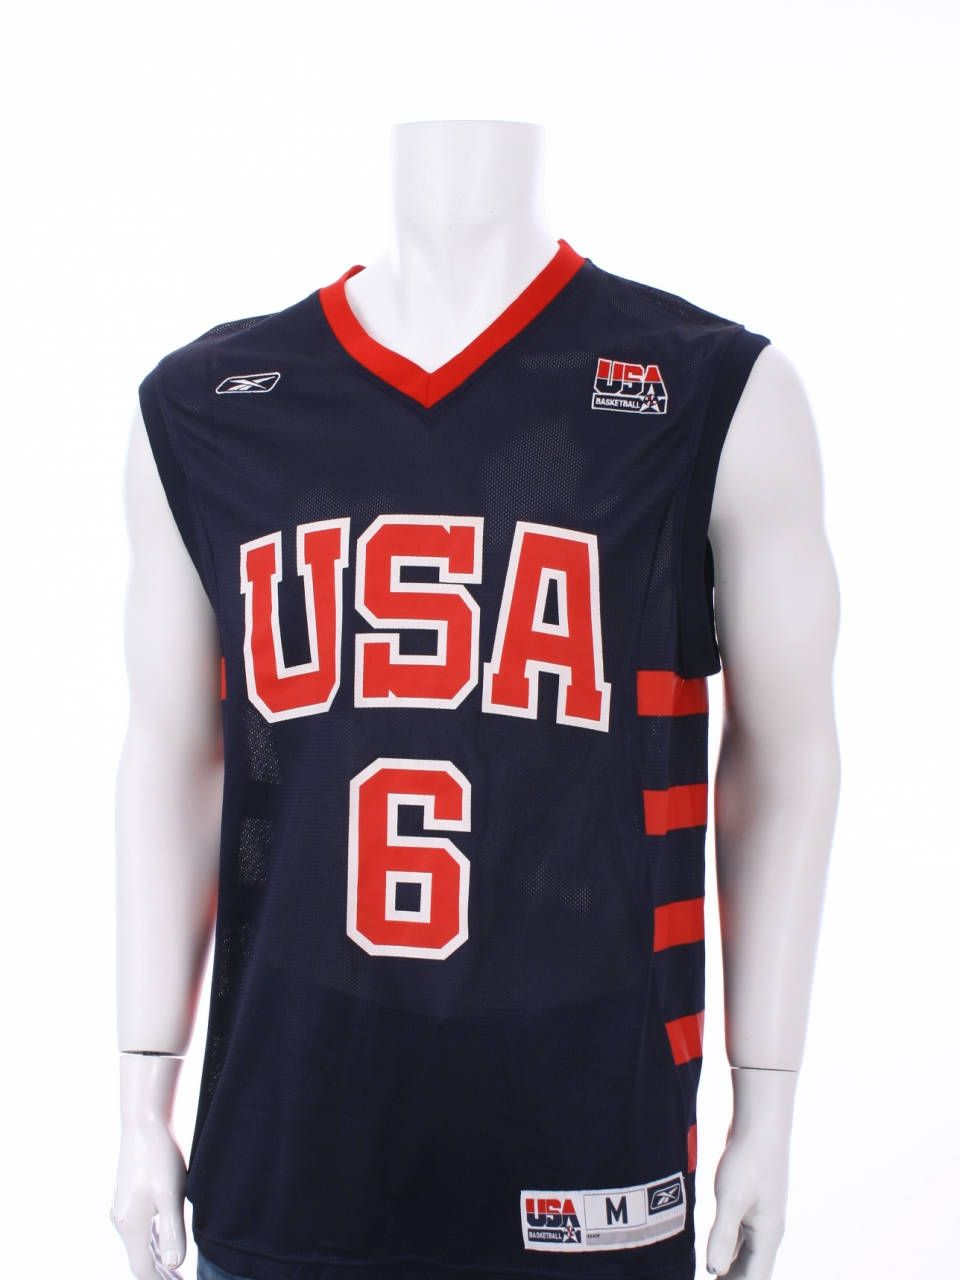 Vintage Tracy McGrady  6 USA Olympic Dream Team Basketball Reebok Jersey  Size M by VapeoVintage on Etsy 75b0c6823